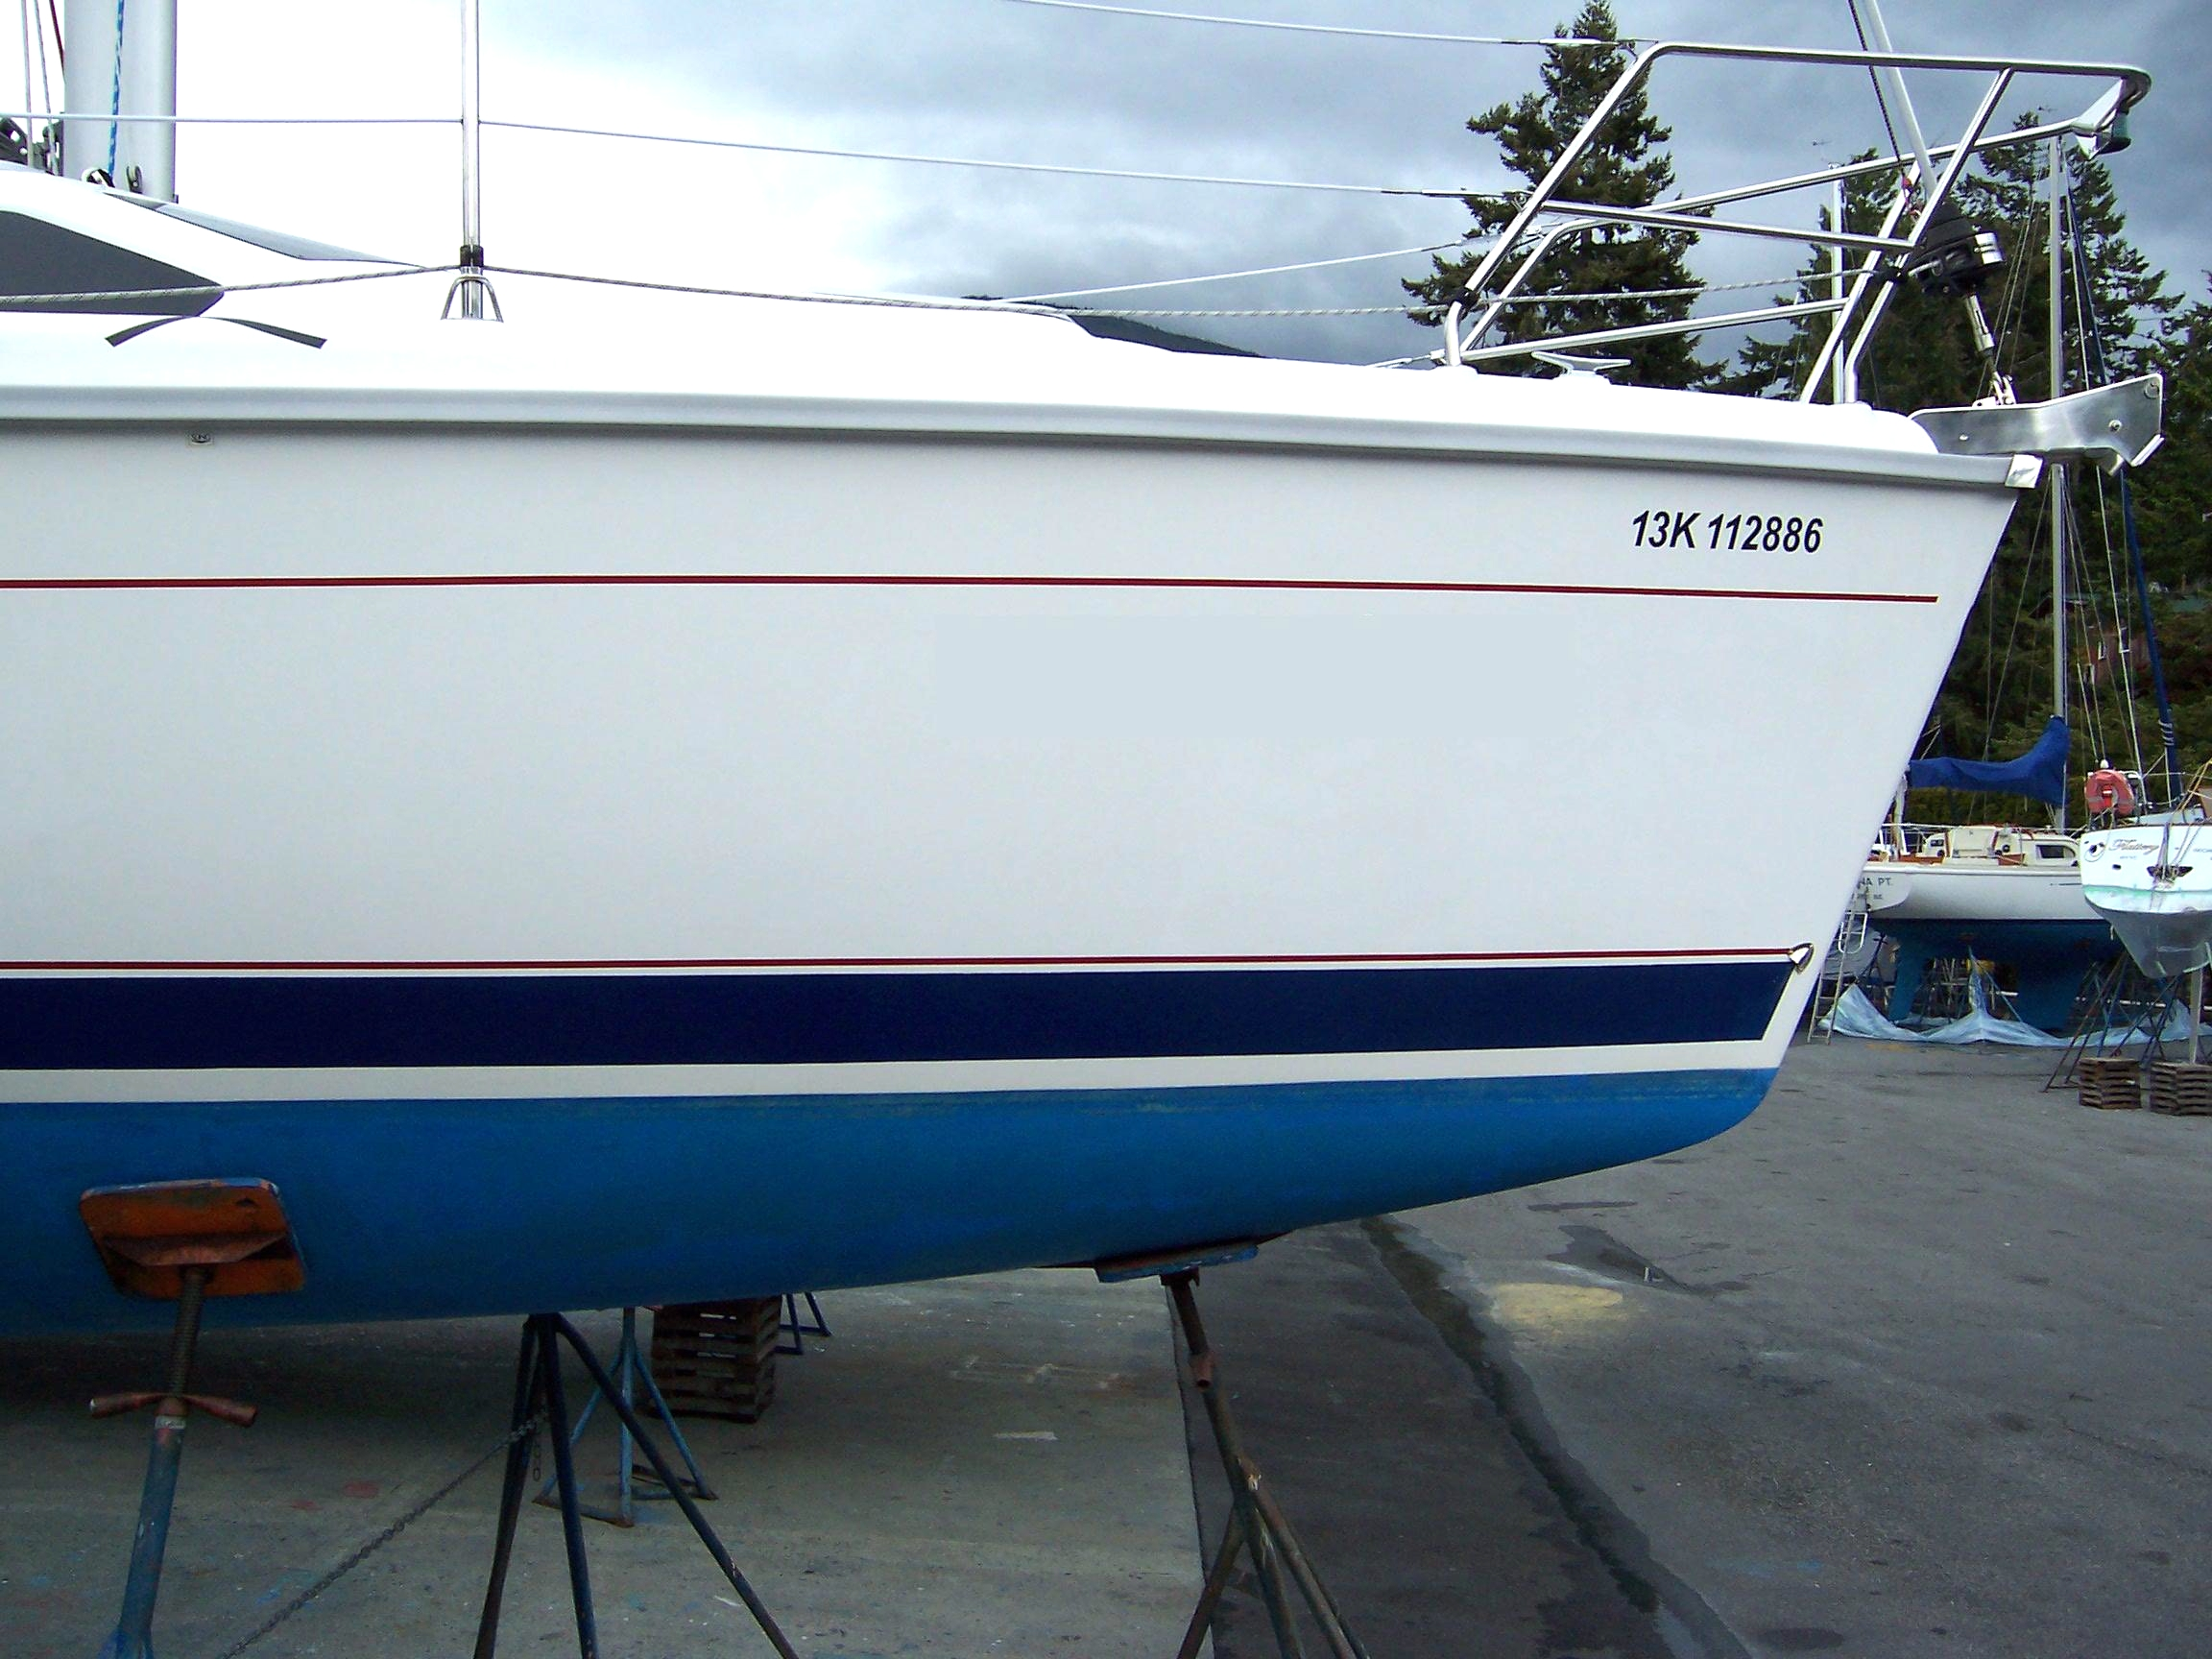 Boat Name Letter Size For Decal SailboatOwnerscom Forums - Boat decals names   easy removal